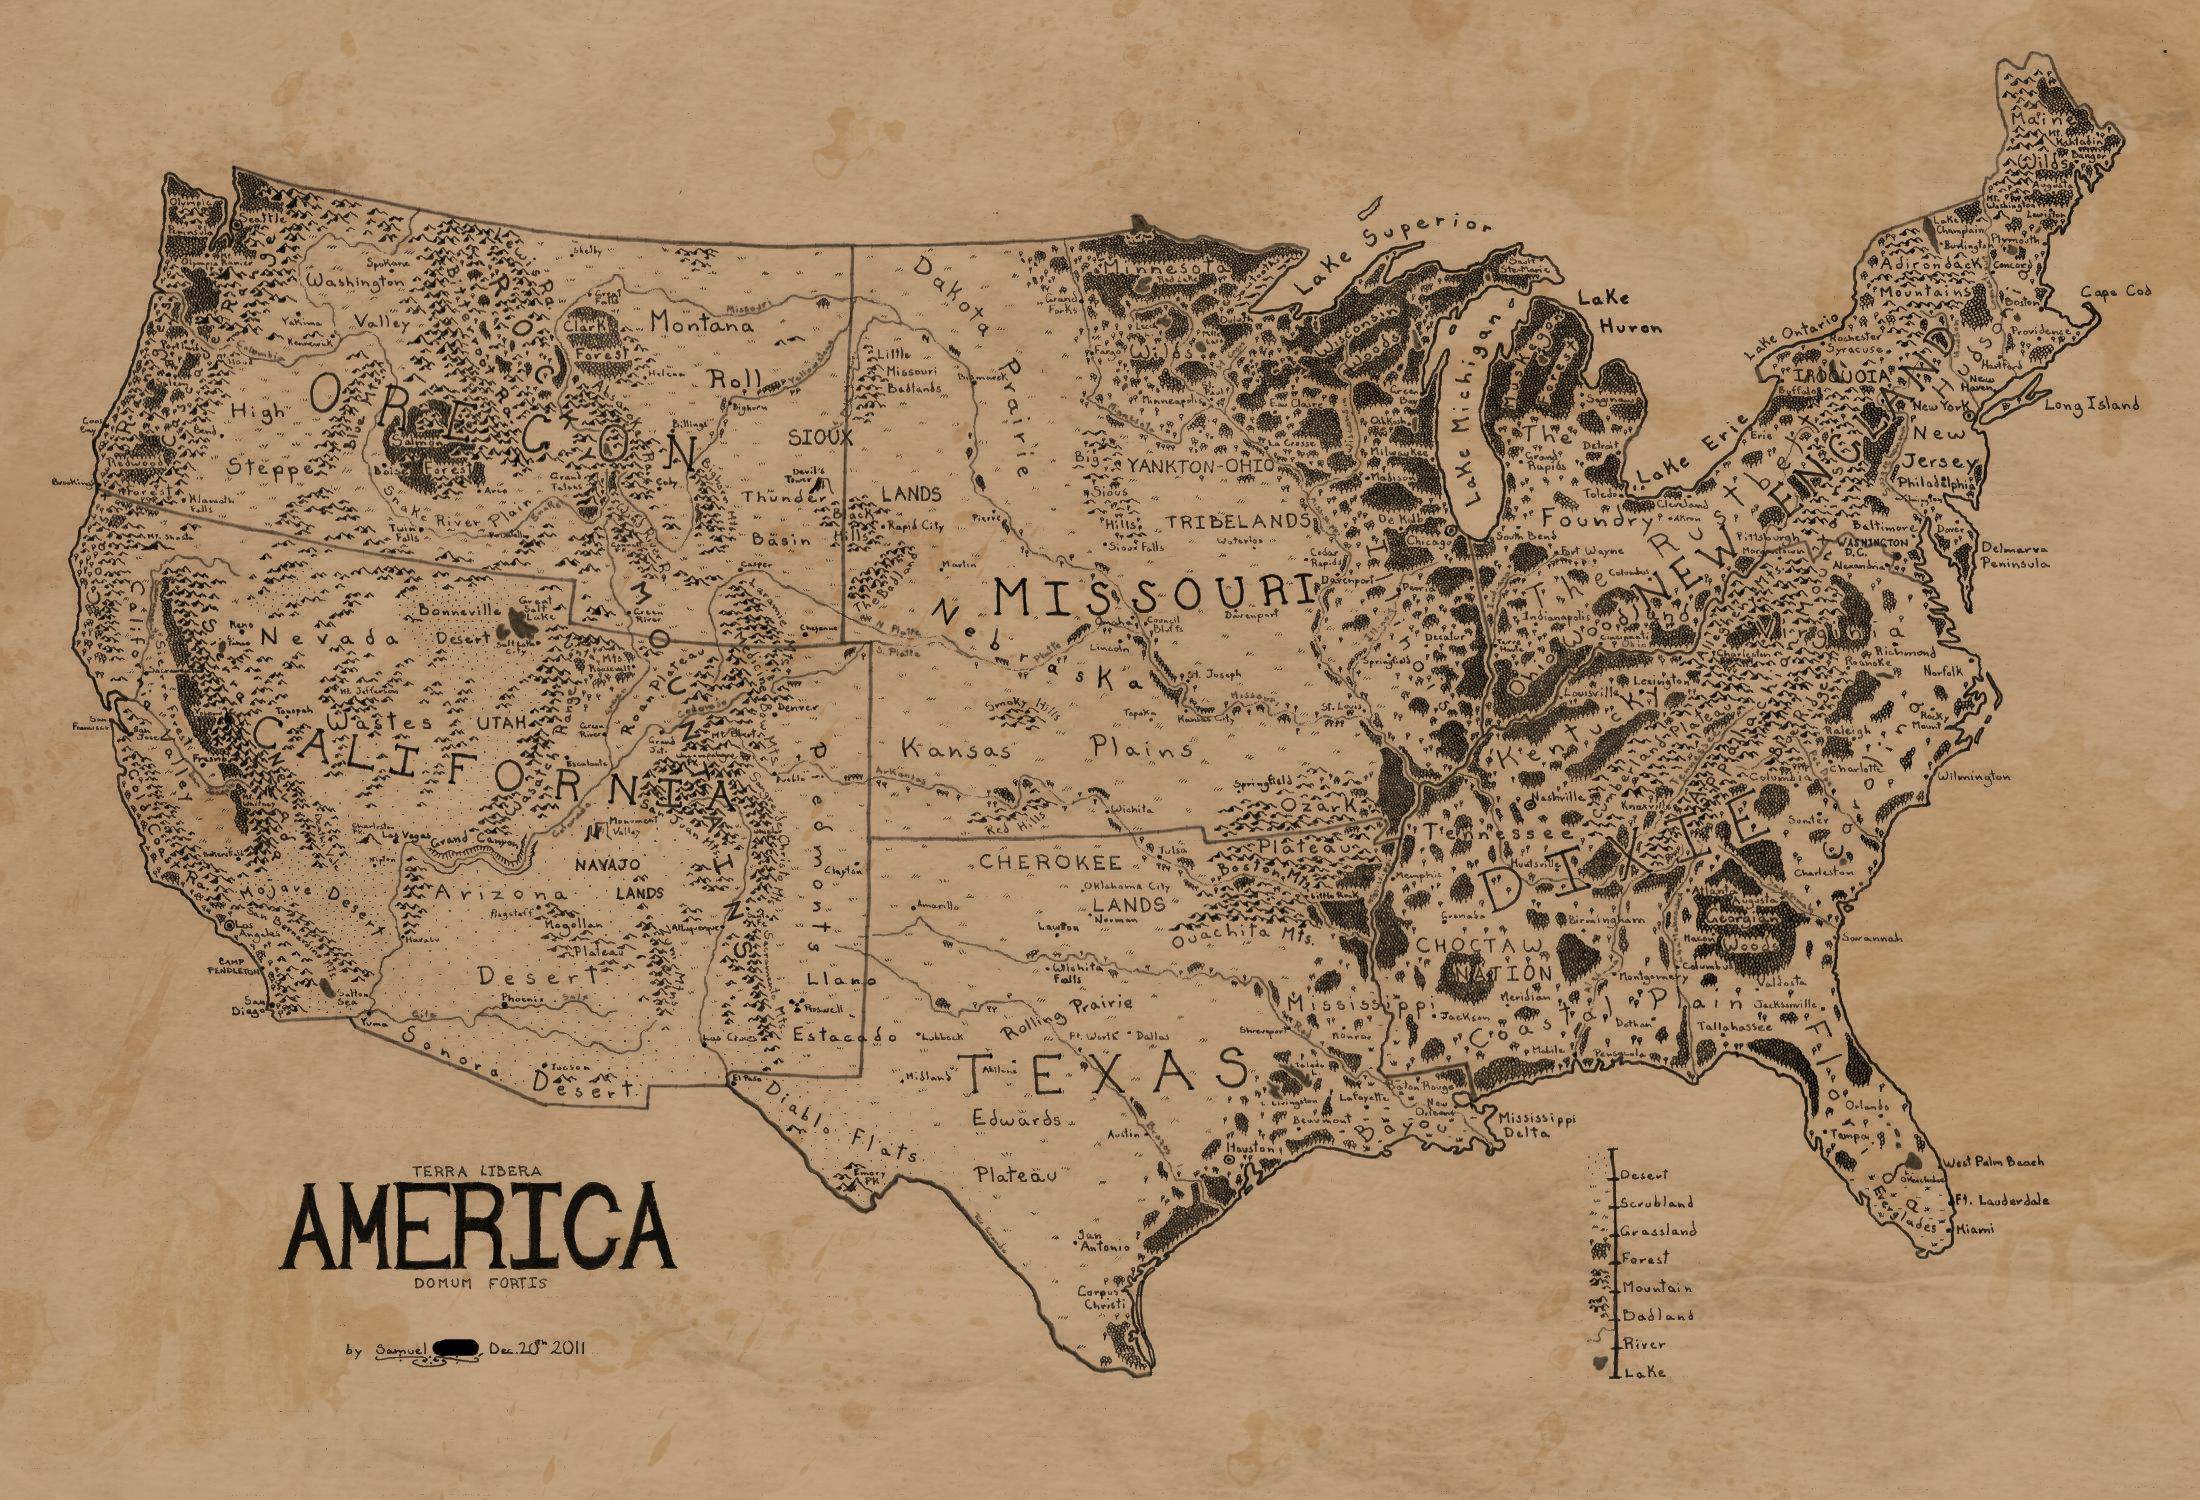 2200x1500 A Map Of The United States, Drawn In The Style Of Lord Of The